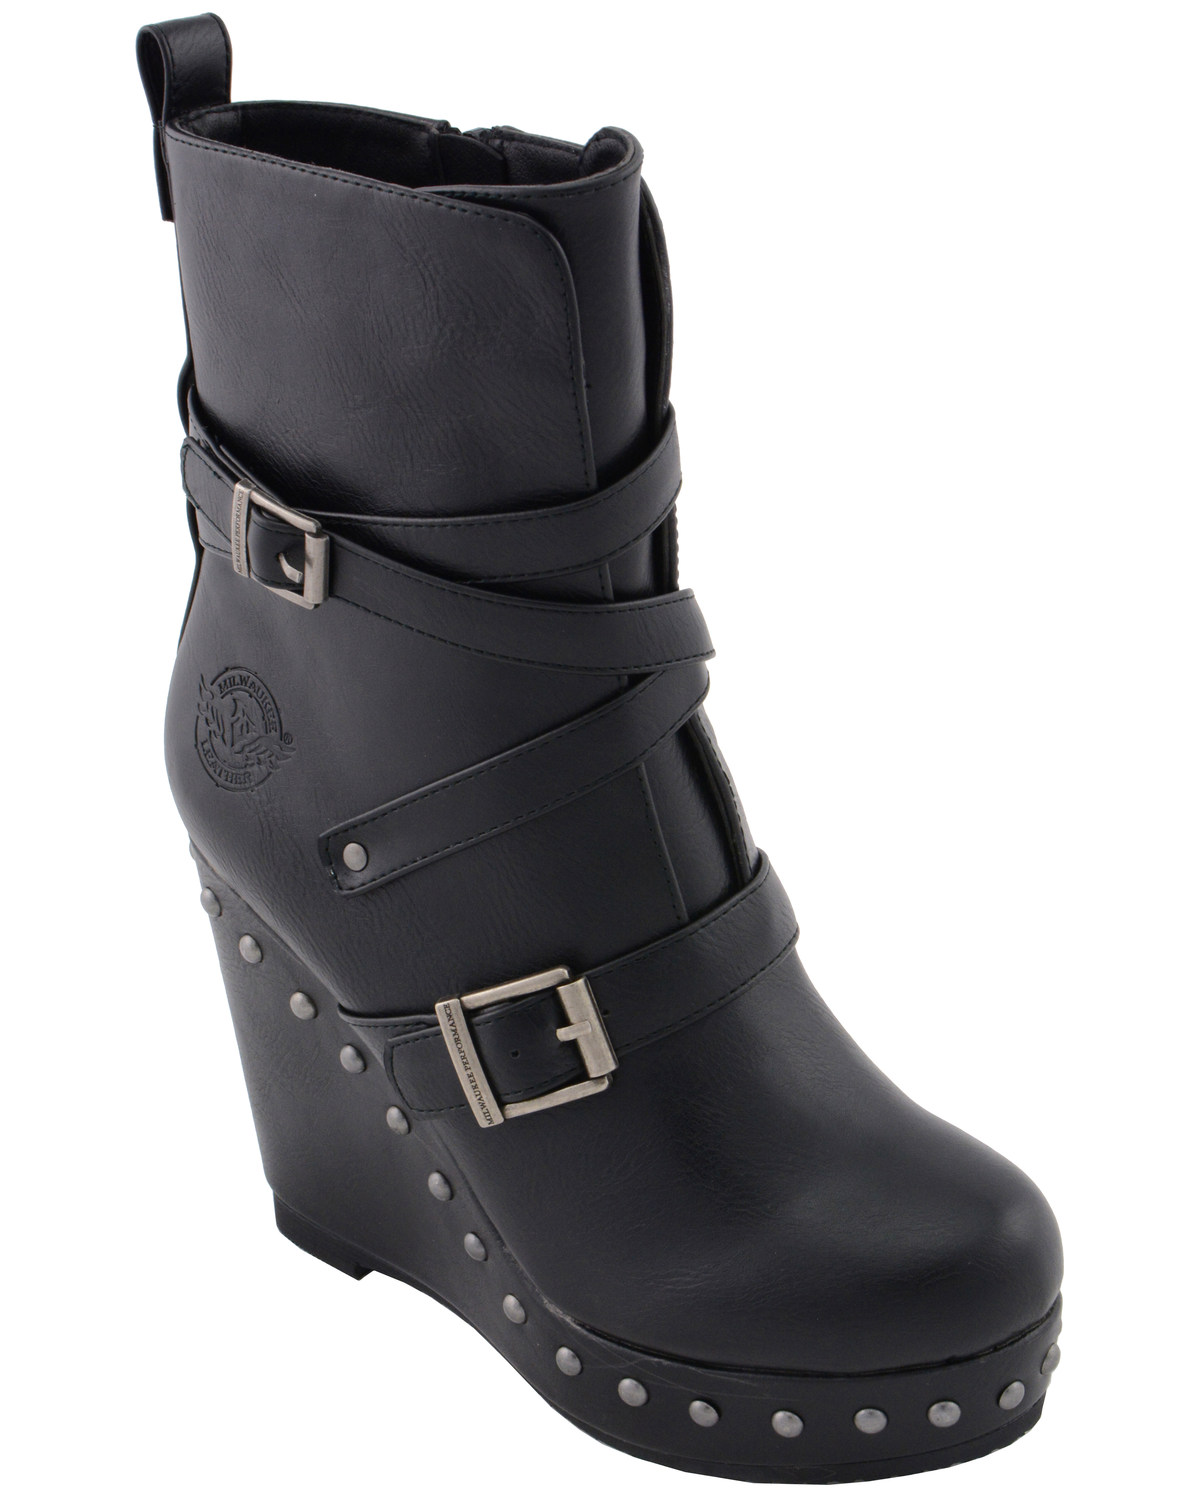 1a9b1a68f99 Milwaukee Leather Women s Triple Strap Wedge Boots - Round Toe ...